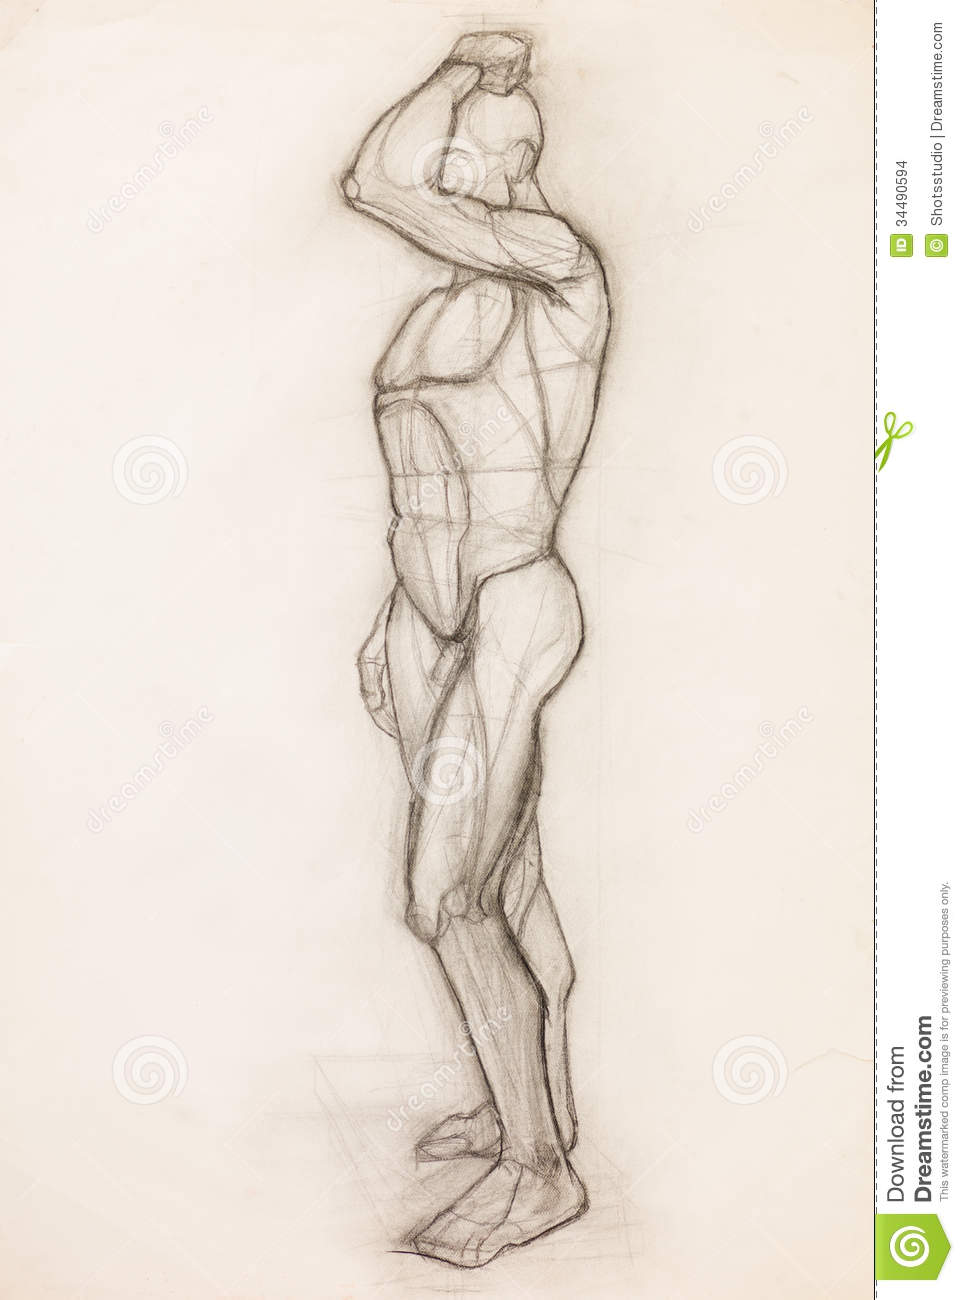 Hand drawn pencil sketch illustrating human body muscles anatomy